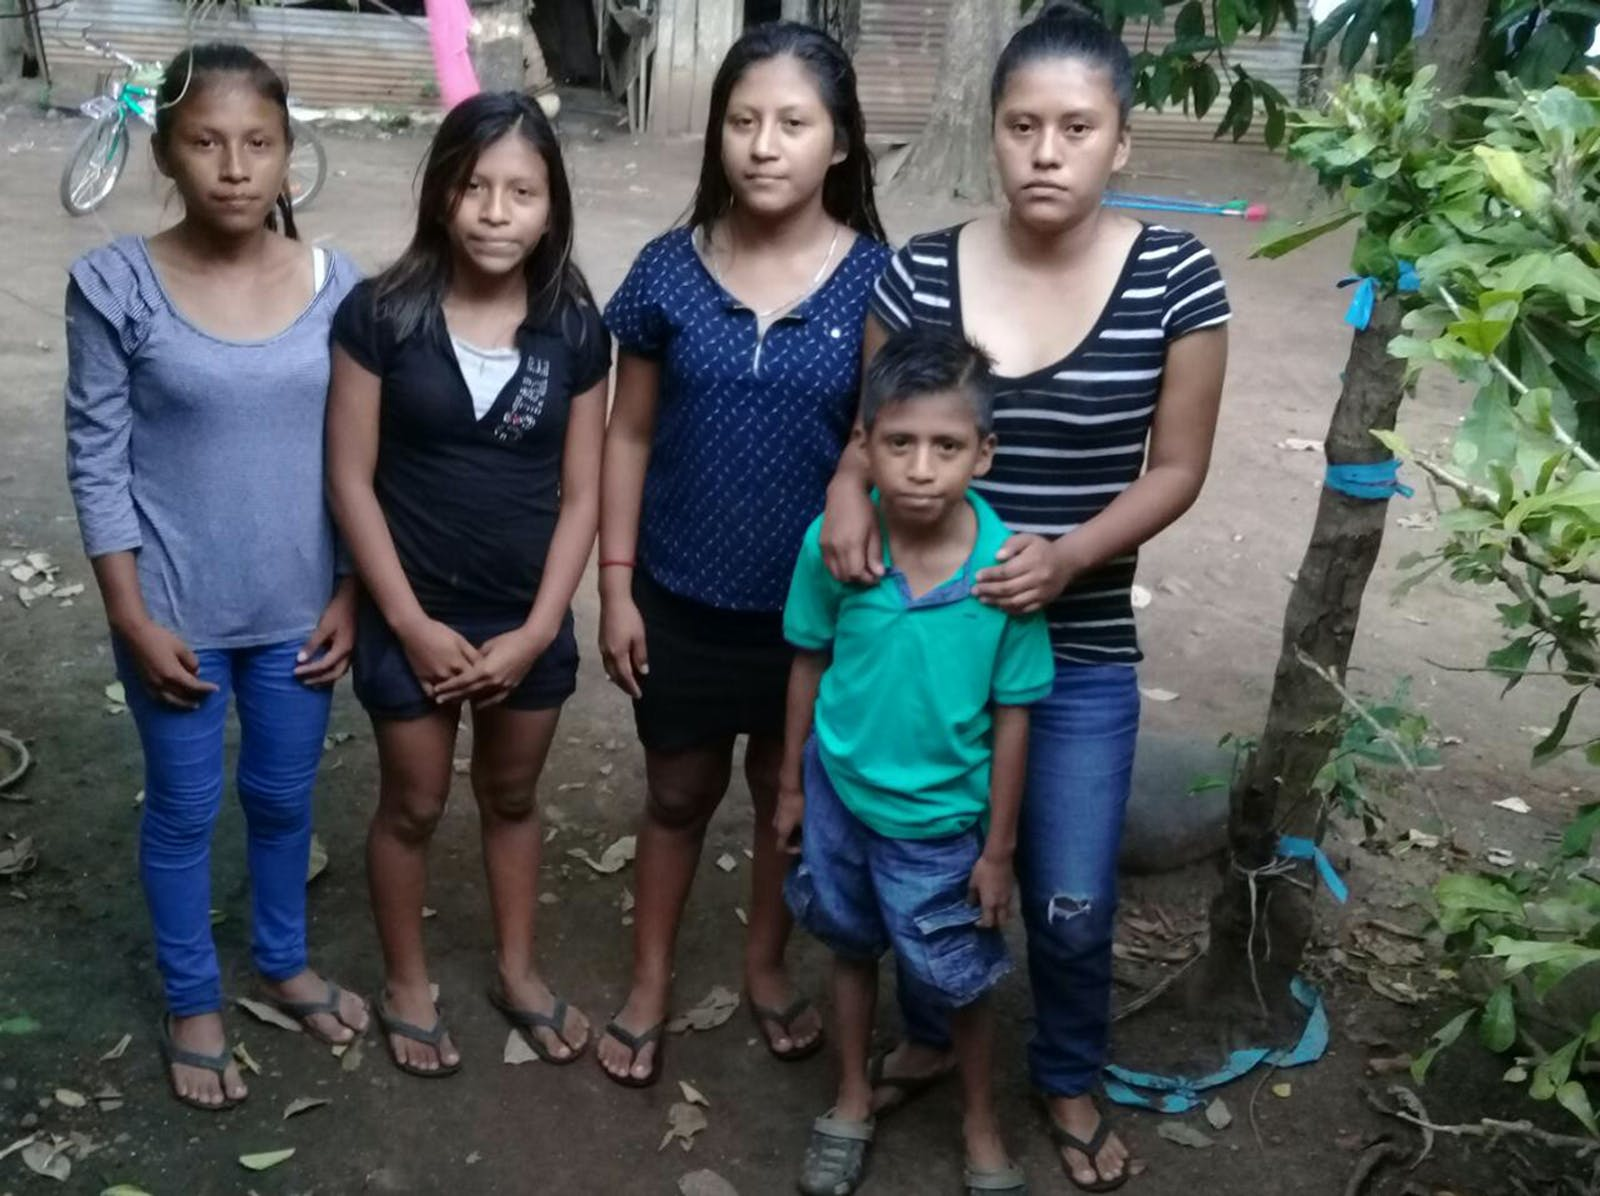 Garcia's family—a wife, four daughters, and a son—live in Guatemala.